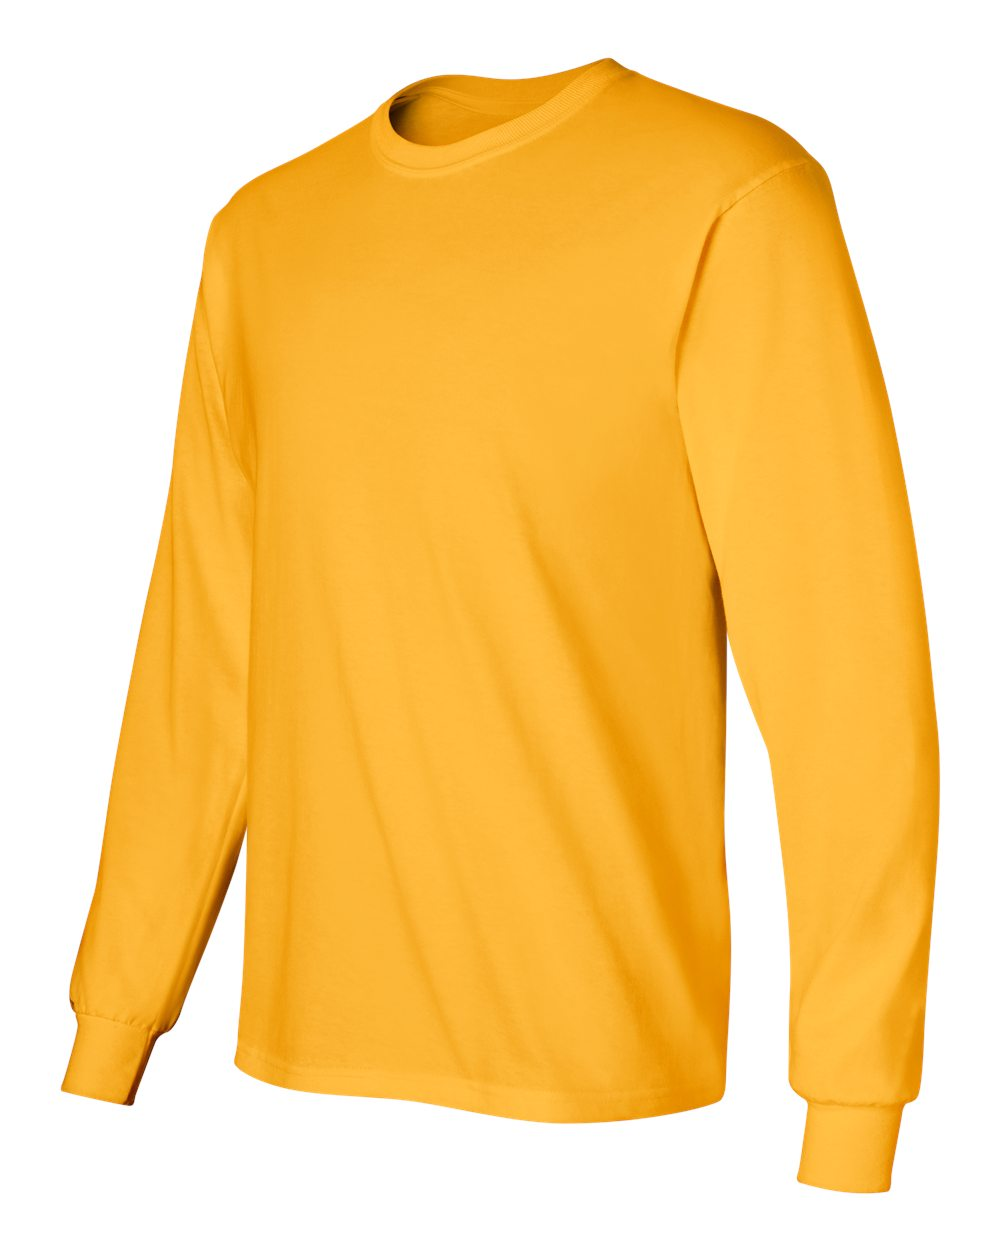 Gildan-Men-039-s-Ultra-Cotton-6-oz-Long-Sleeve-T-Shirt-G240-S-5XL thumbnail 35